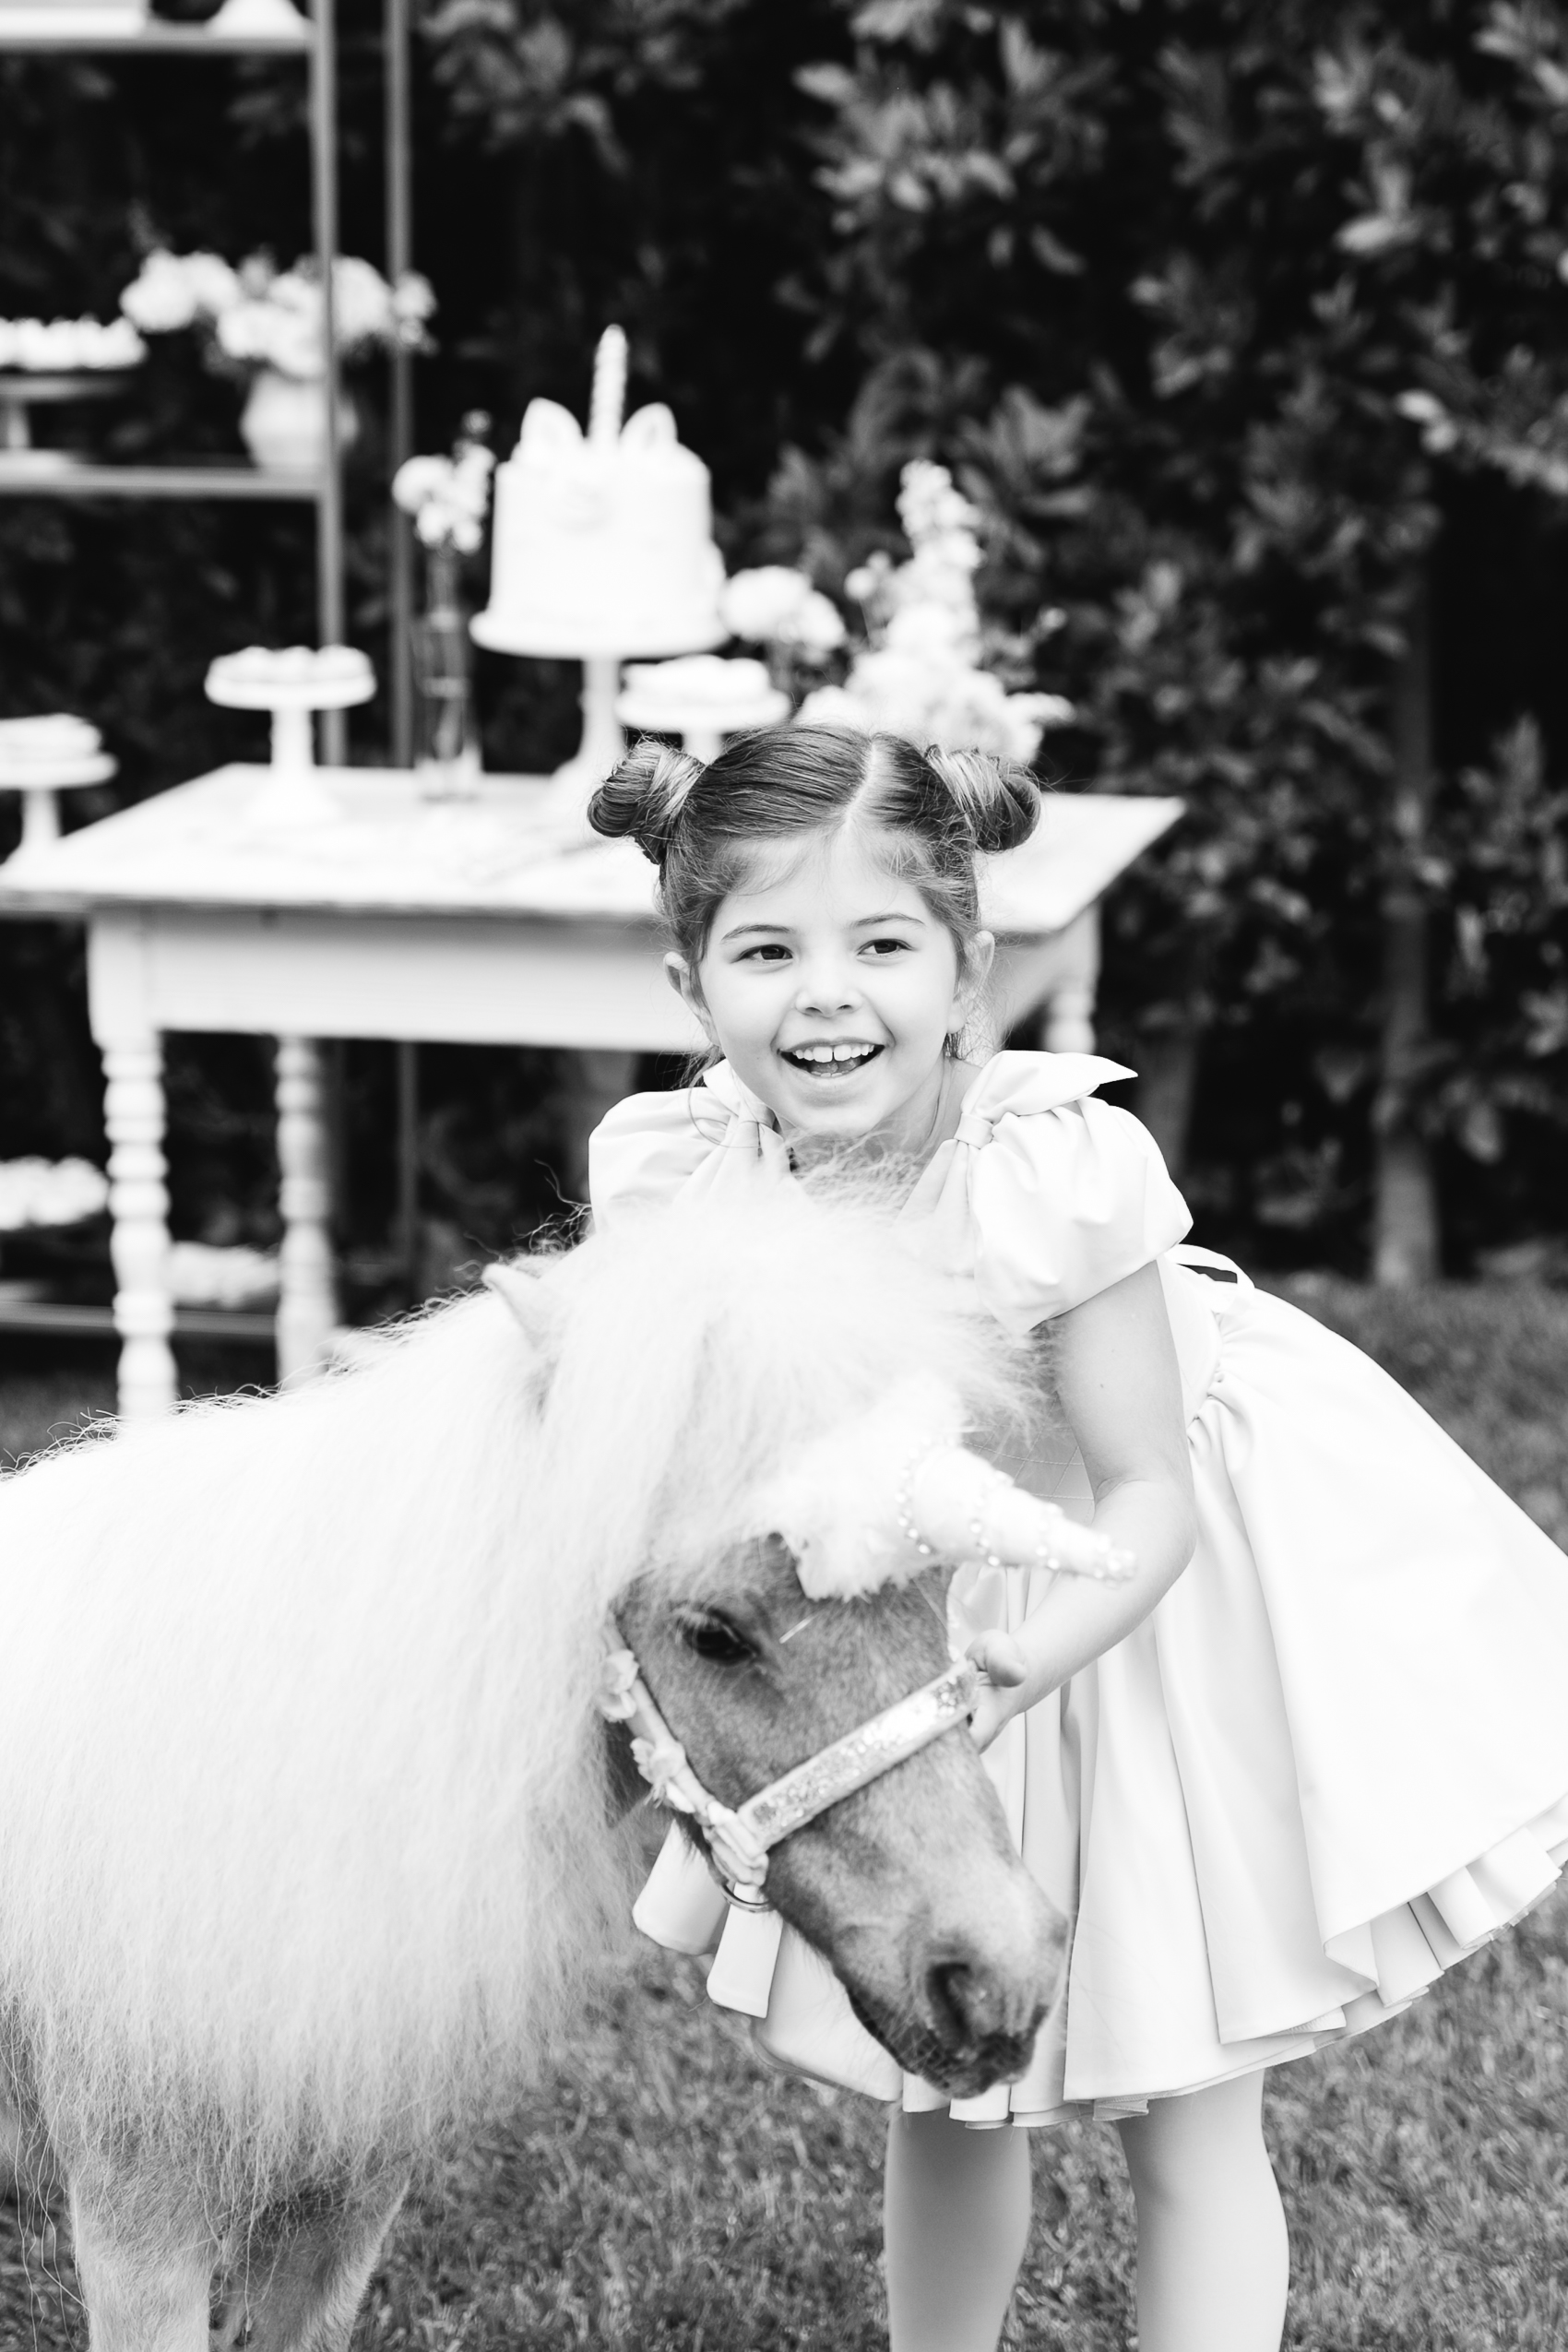 Los_Angeles_Family_Photographer_Luxury_Childrens_Party_Beverly_Hills_Unicorn_Birthday_Party-0635.jpg